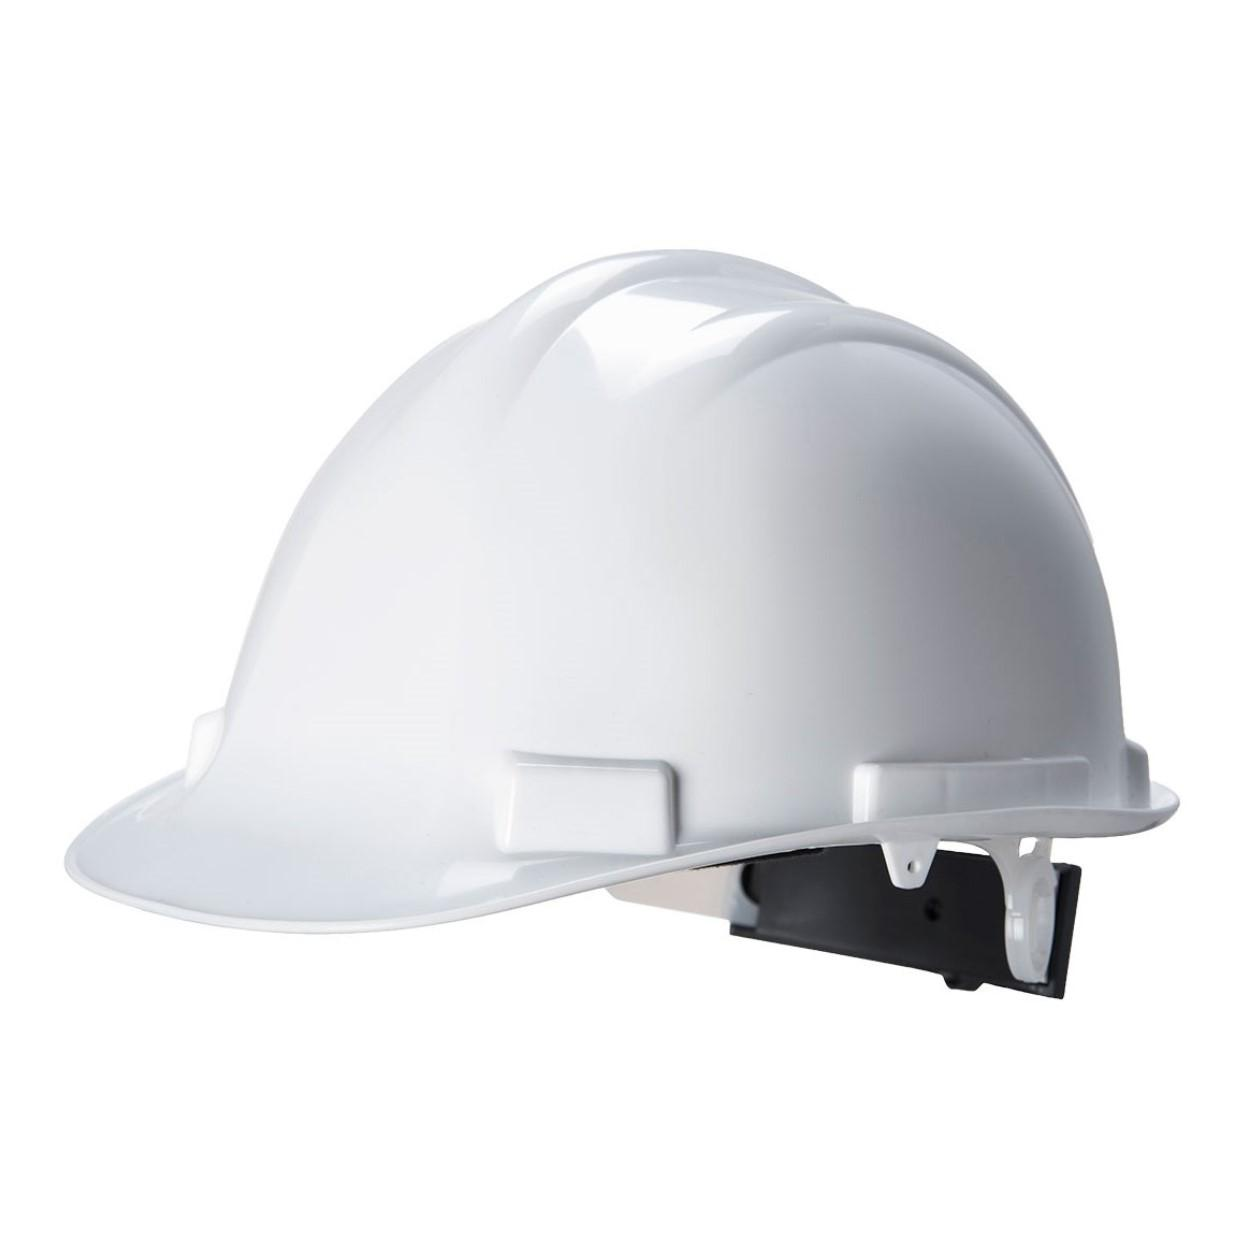 Casque de securite expertbase portwest ps57 2002